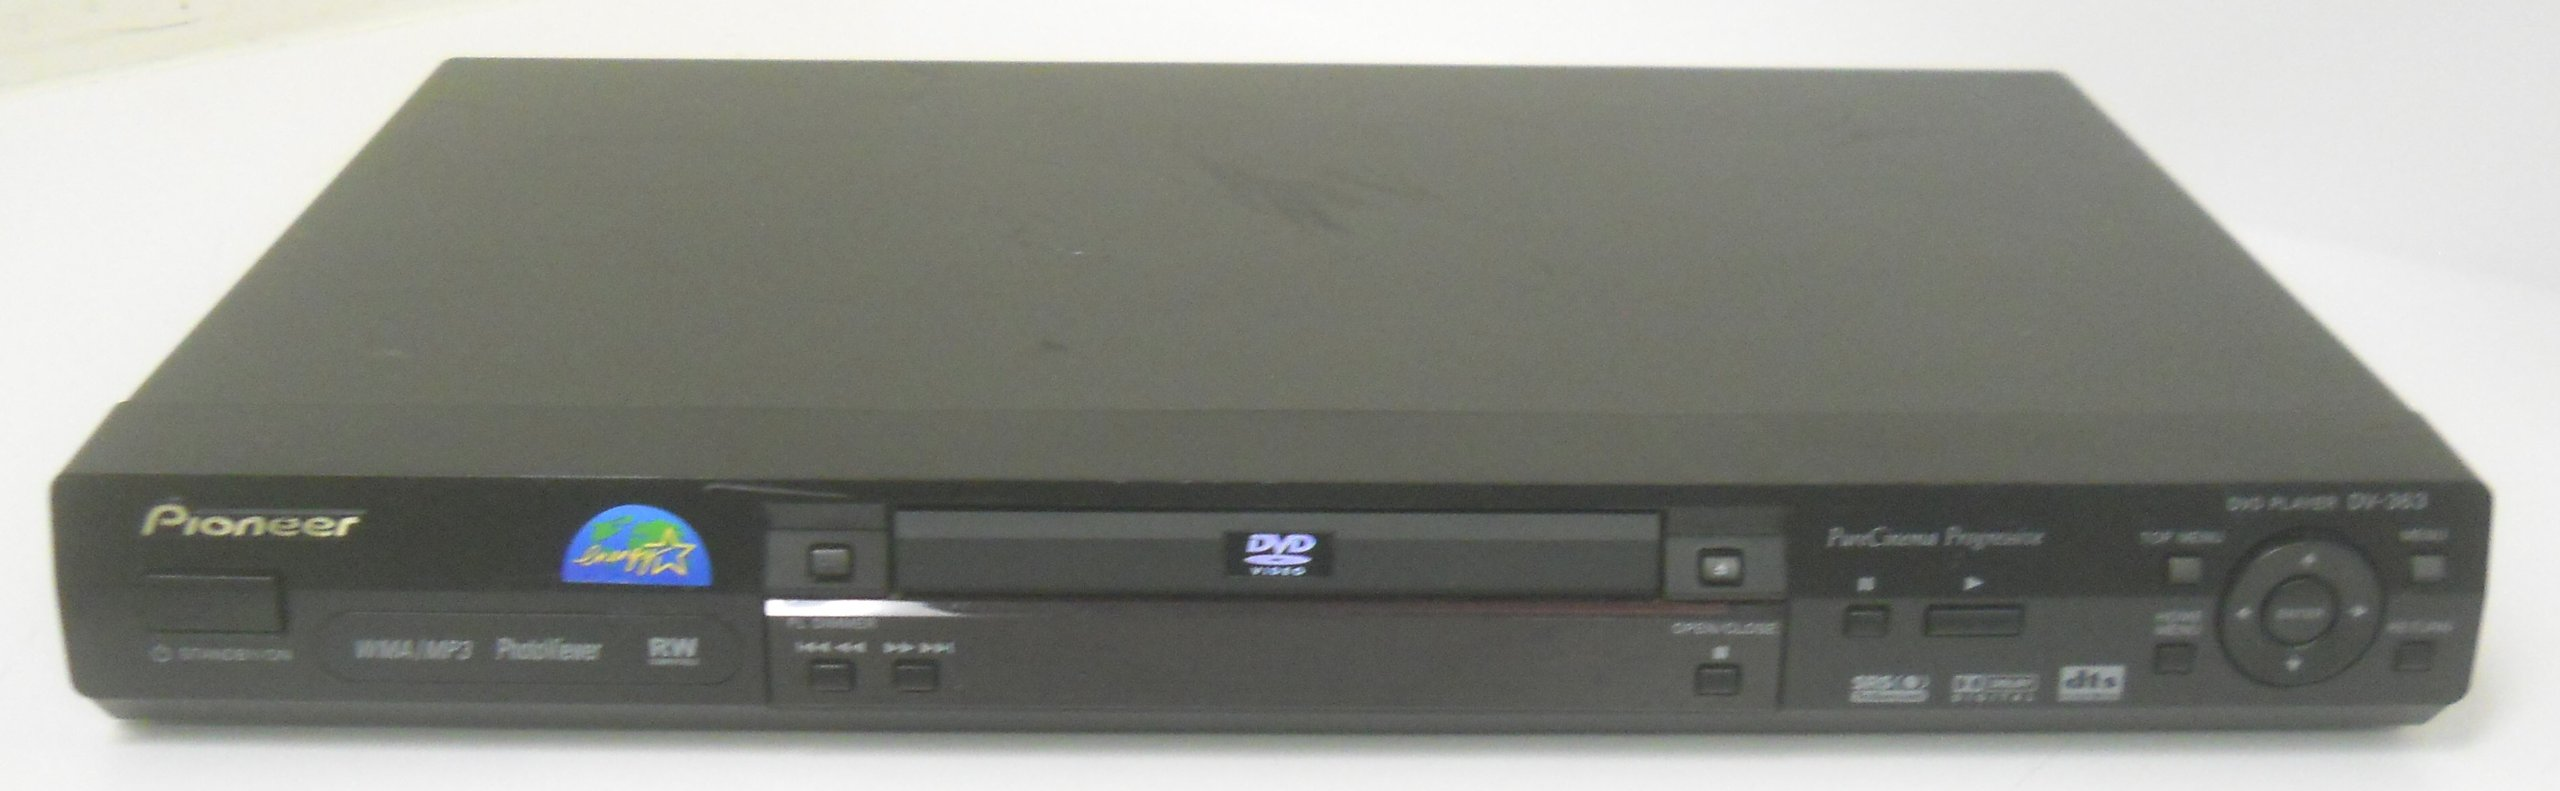 Pioneer DV-363 DV363K DVD Player Digital Video Disc CD Player MP3 RW Compatible